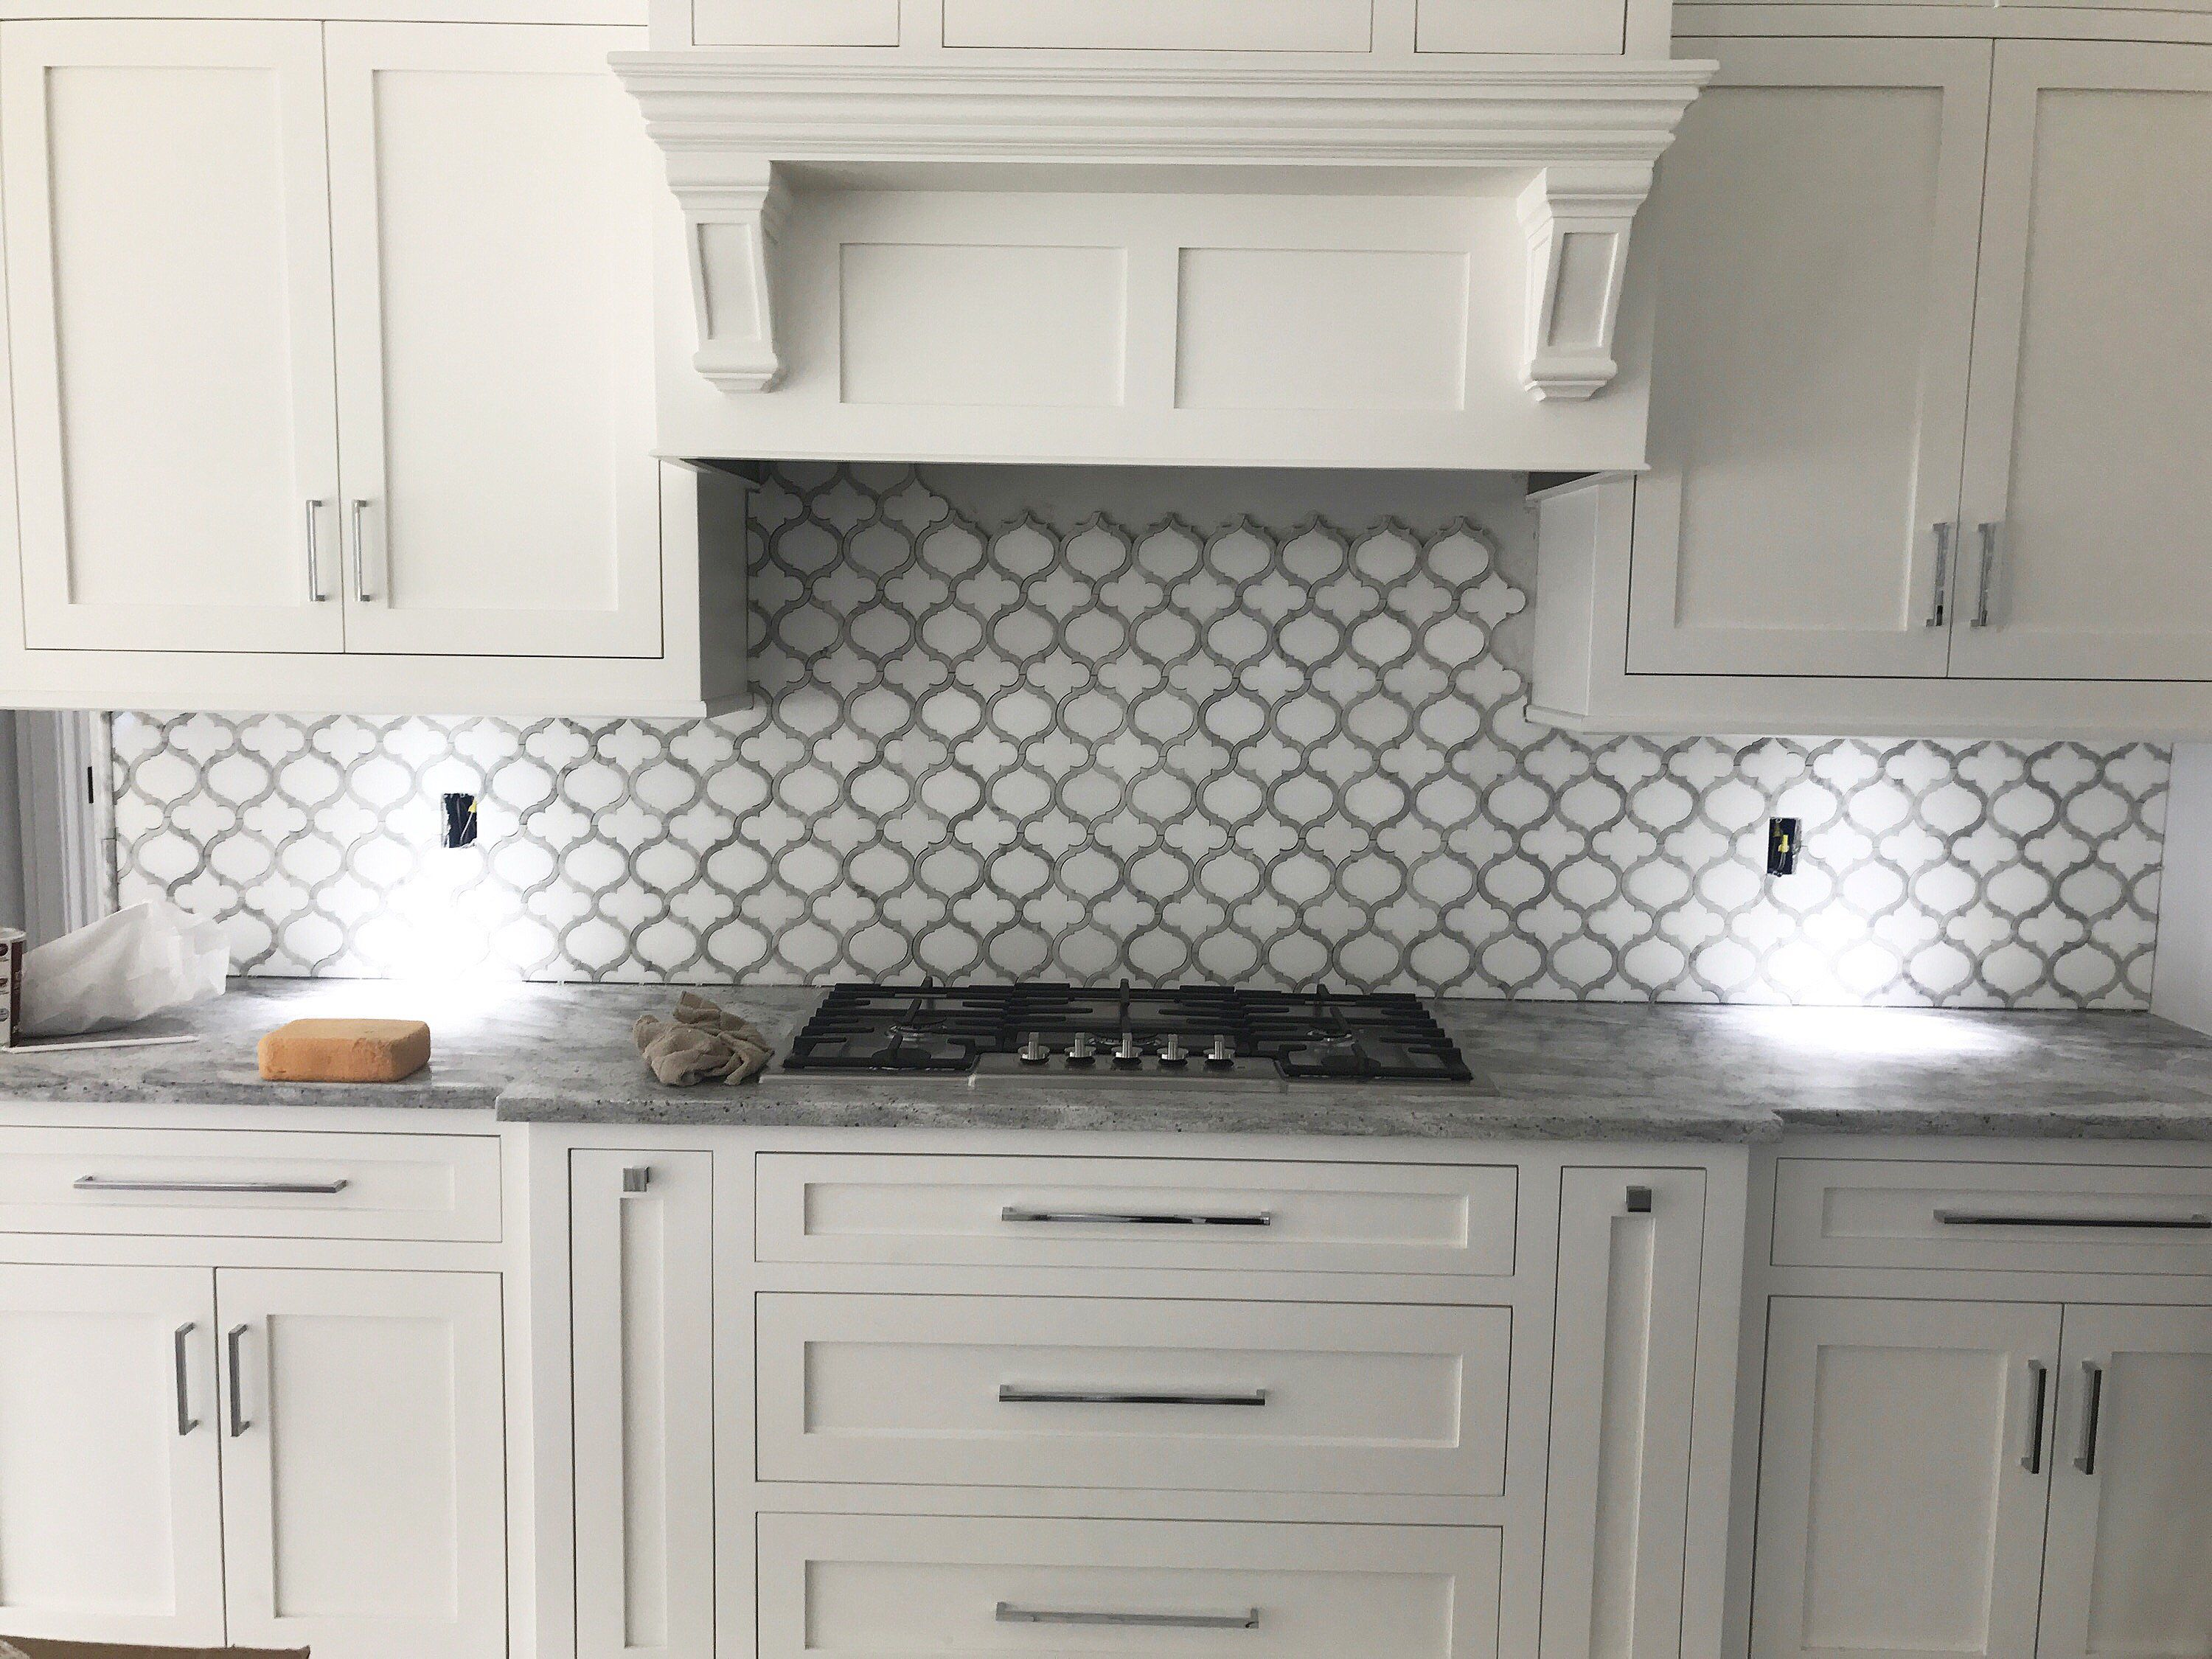 Kitchen Backsplash Ideas Arabesque White Thassos Carrara Carrera